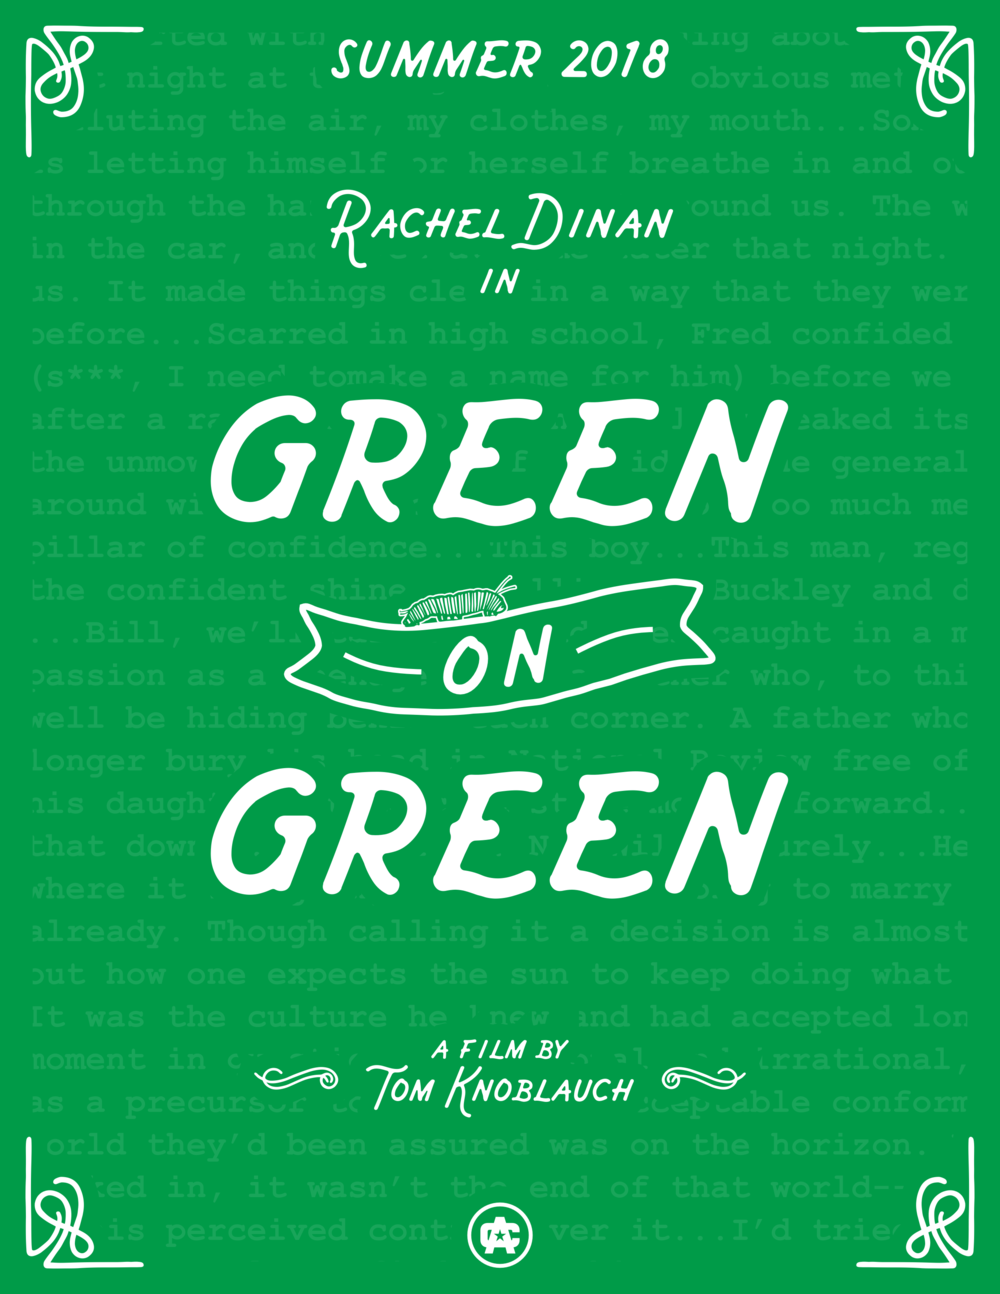 Green on Green Promo Poster 5.png